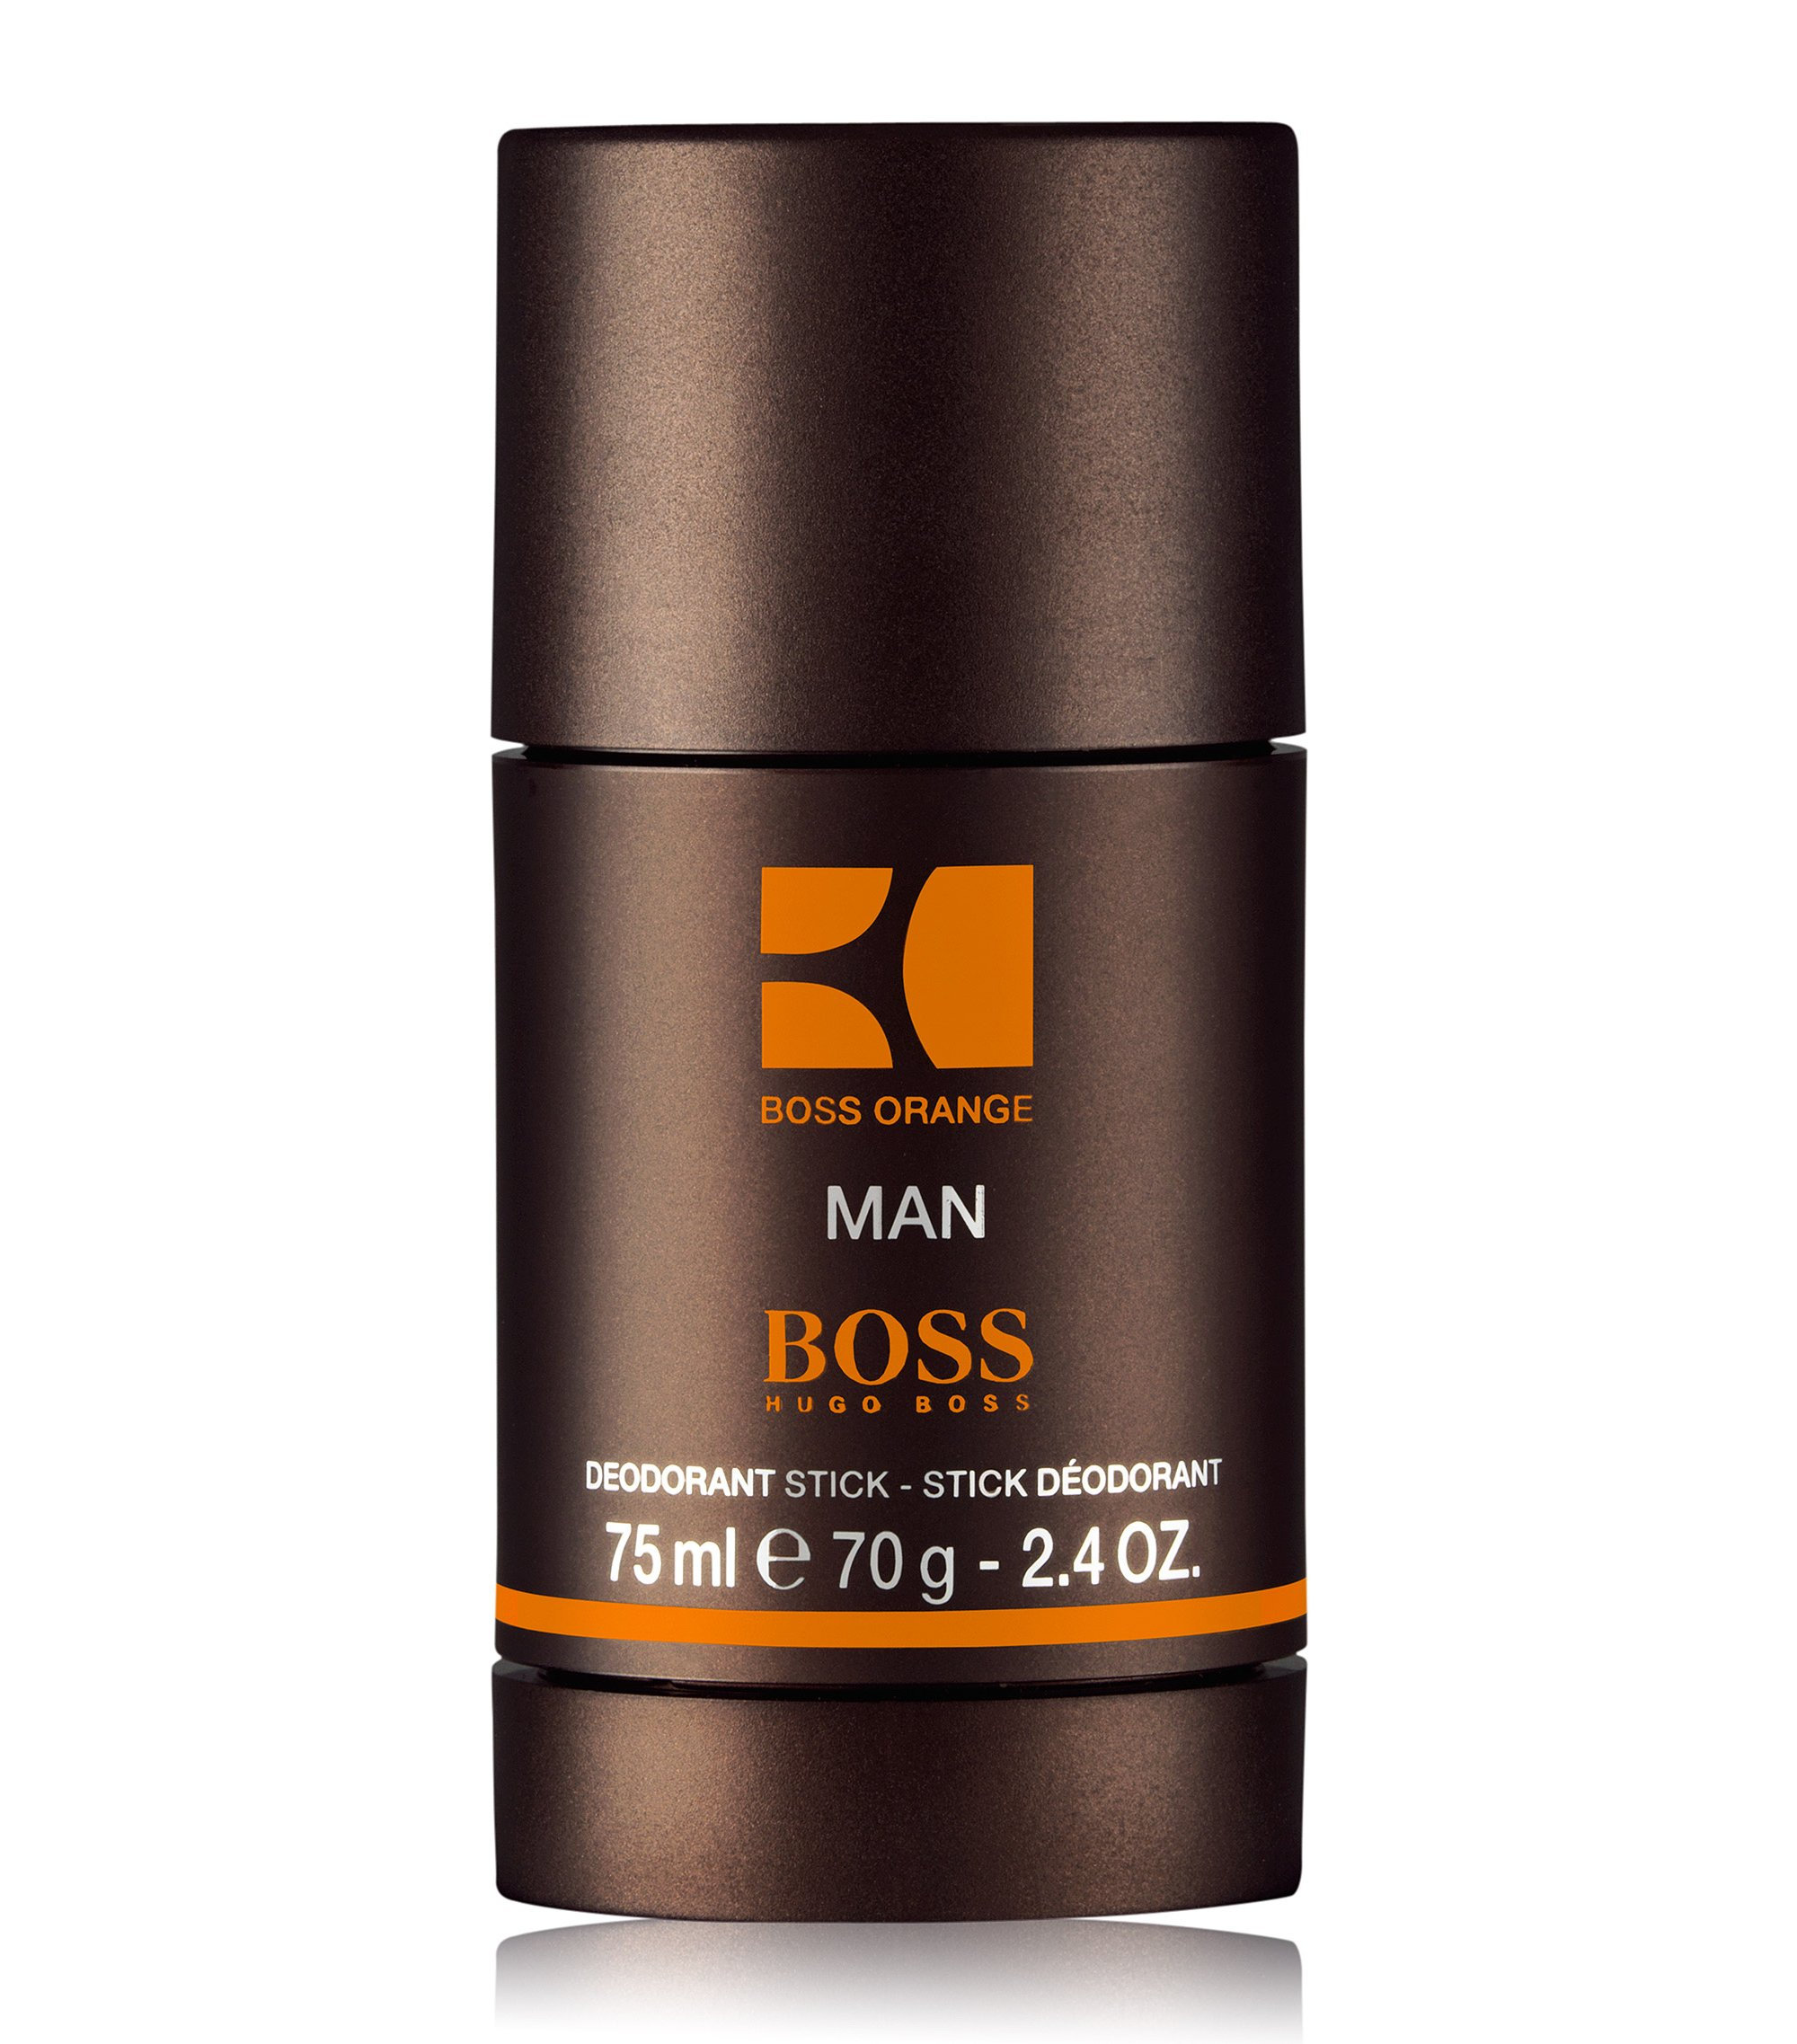 Deodorante stick BOSS Orange Man da 75 ml, Assorted-Pre-Pack